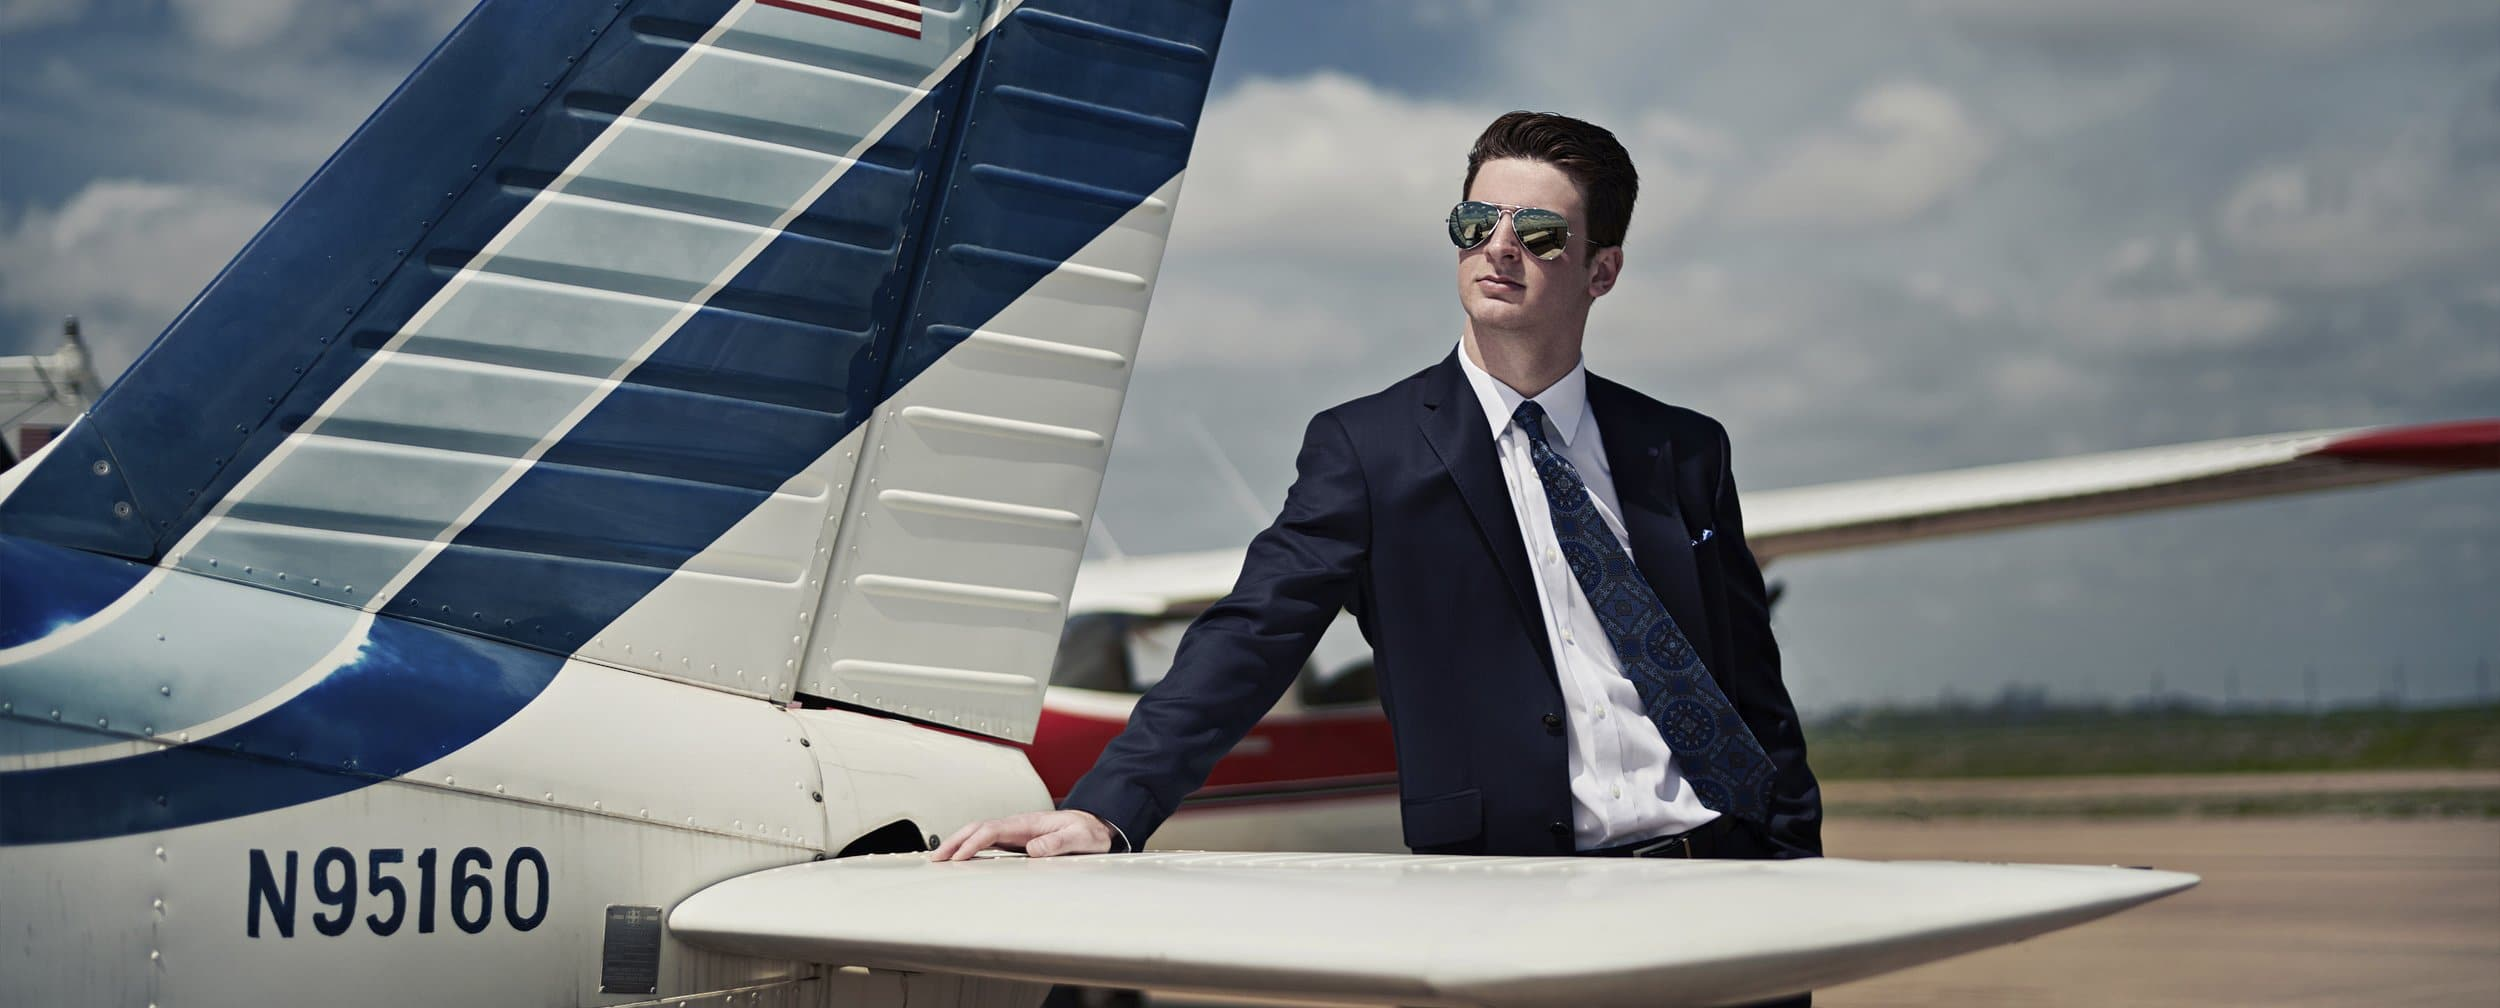 Dallas Senior Portraits Photographer Banner Photo boy in suit and airplane